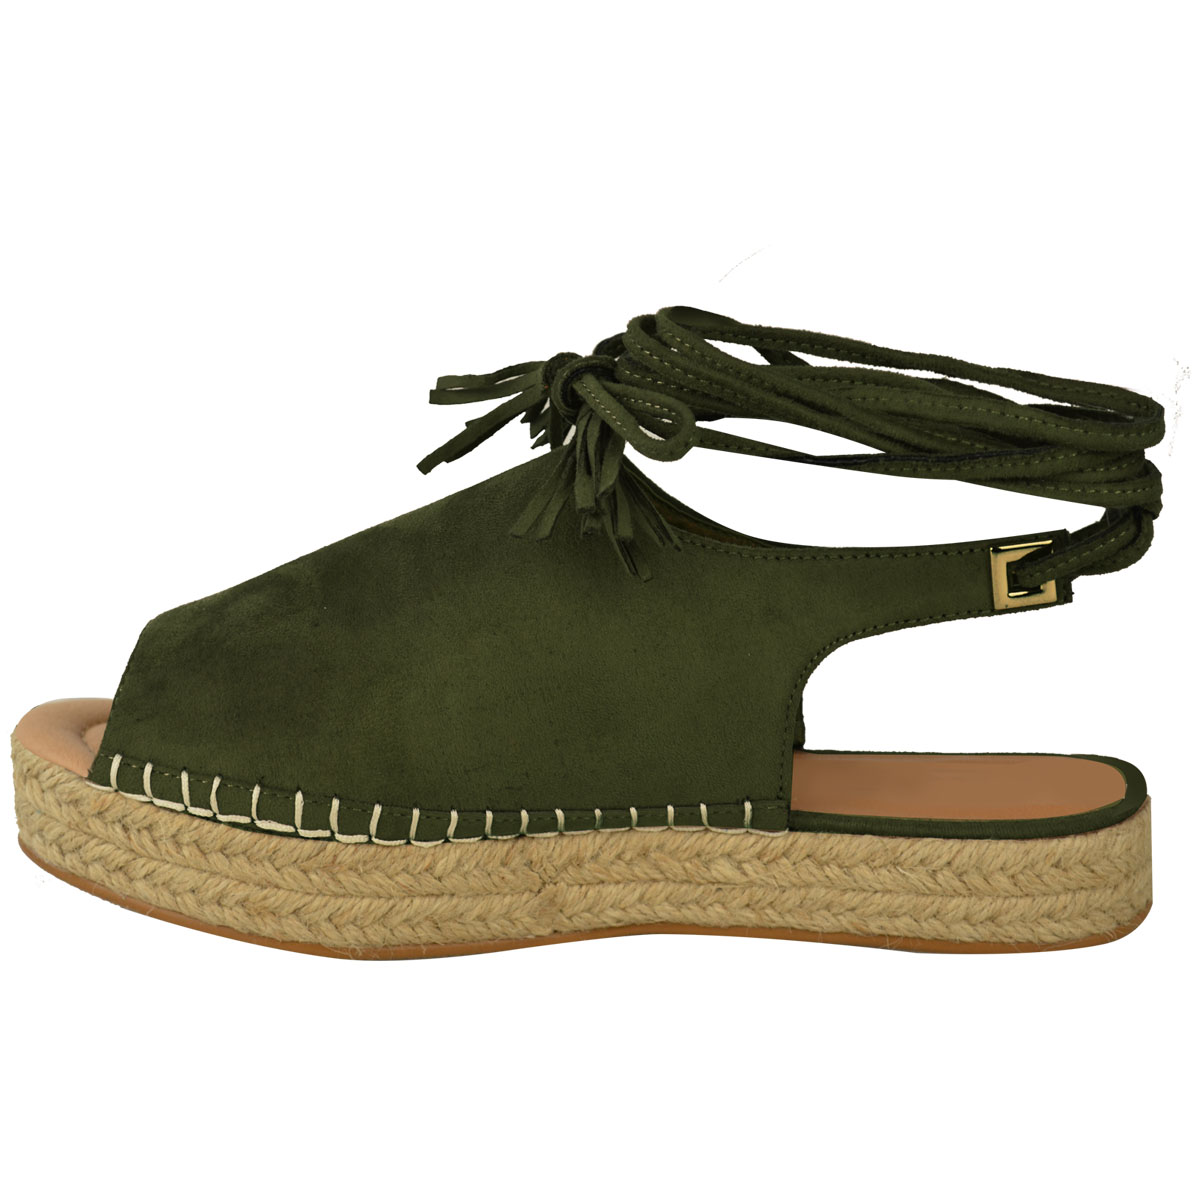 womens lace up espadrilles summer strappy sandals